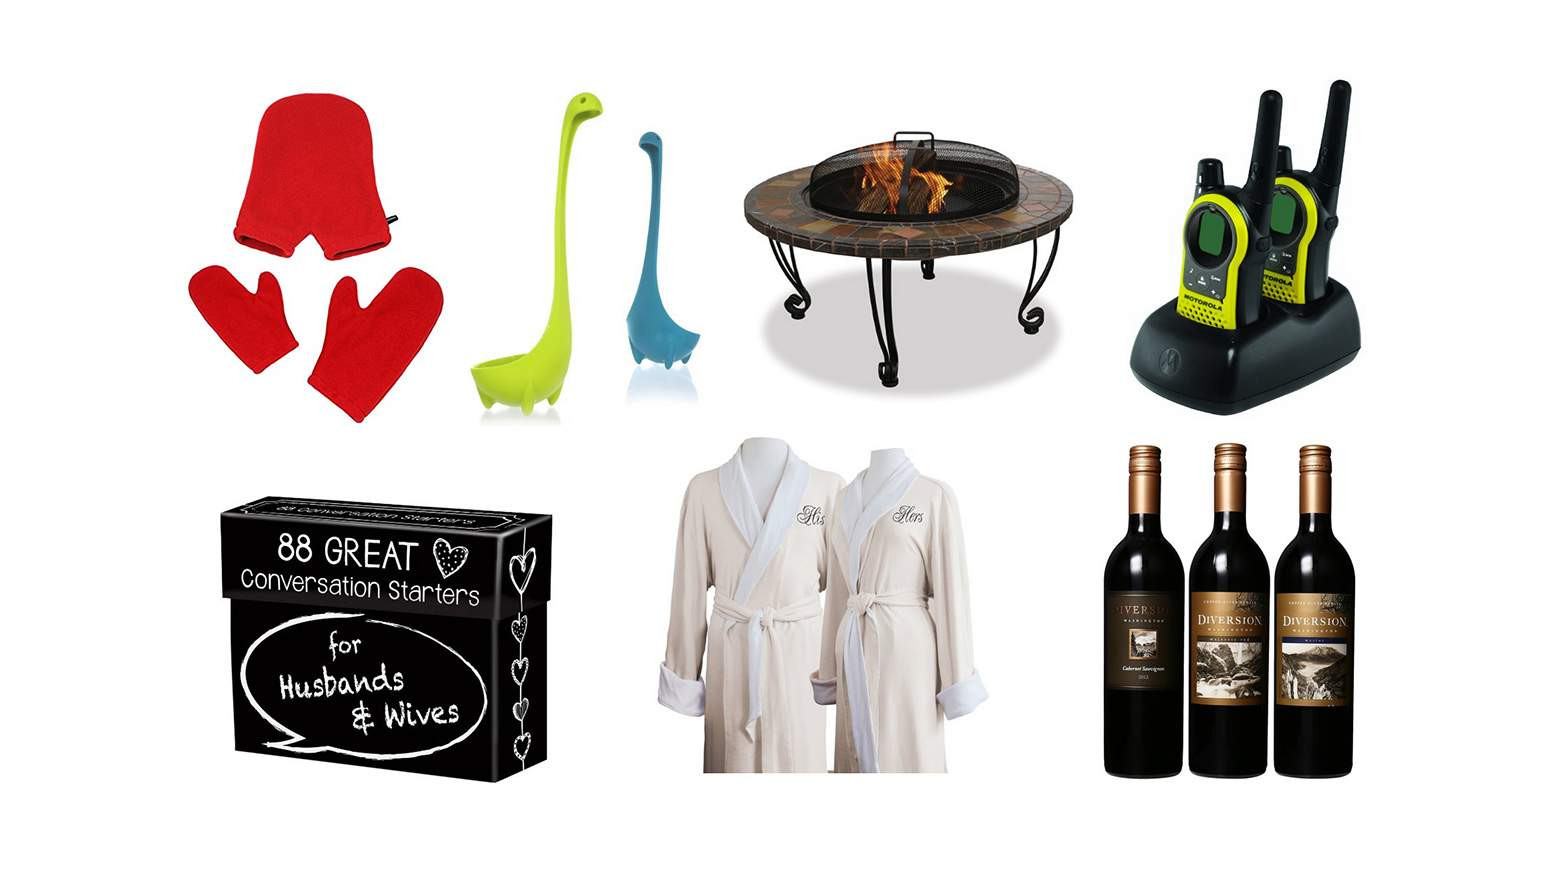 Best ideas about Holiday Gift Ideas Couples . Save or Pin Christmas Gifts for Couples Top 10 Best Ideas Now.